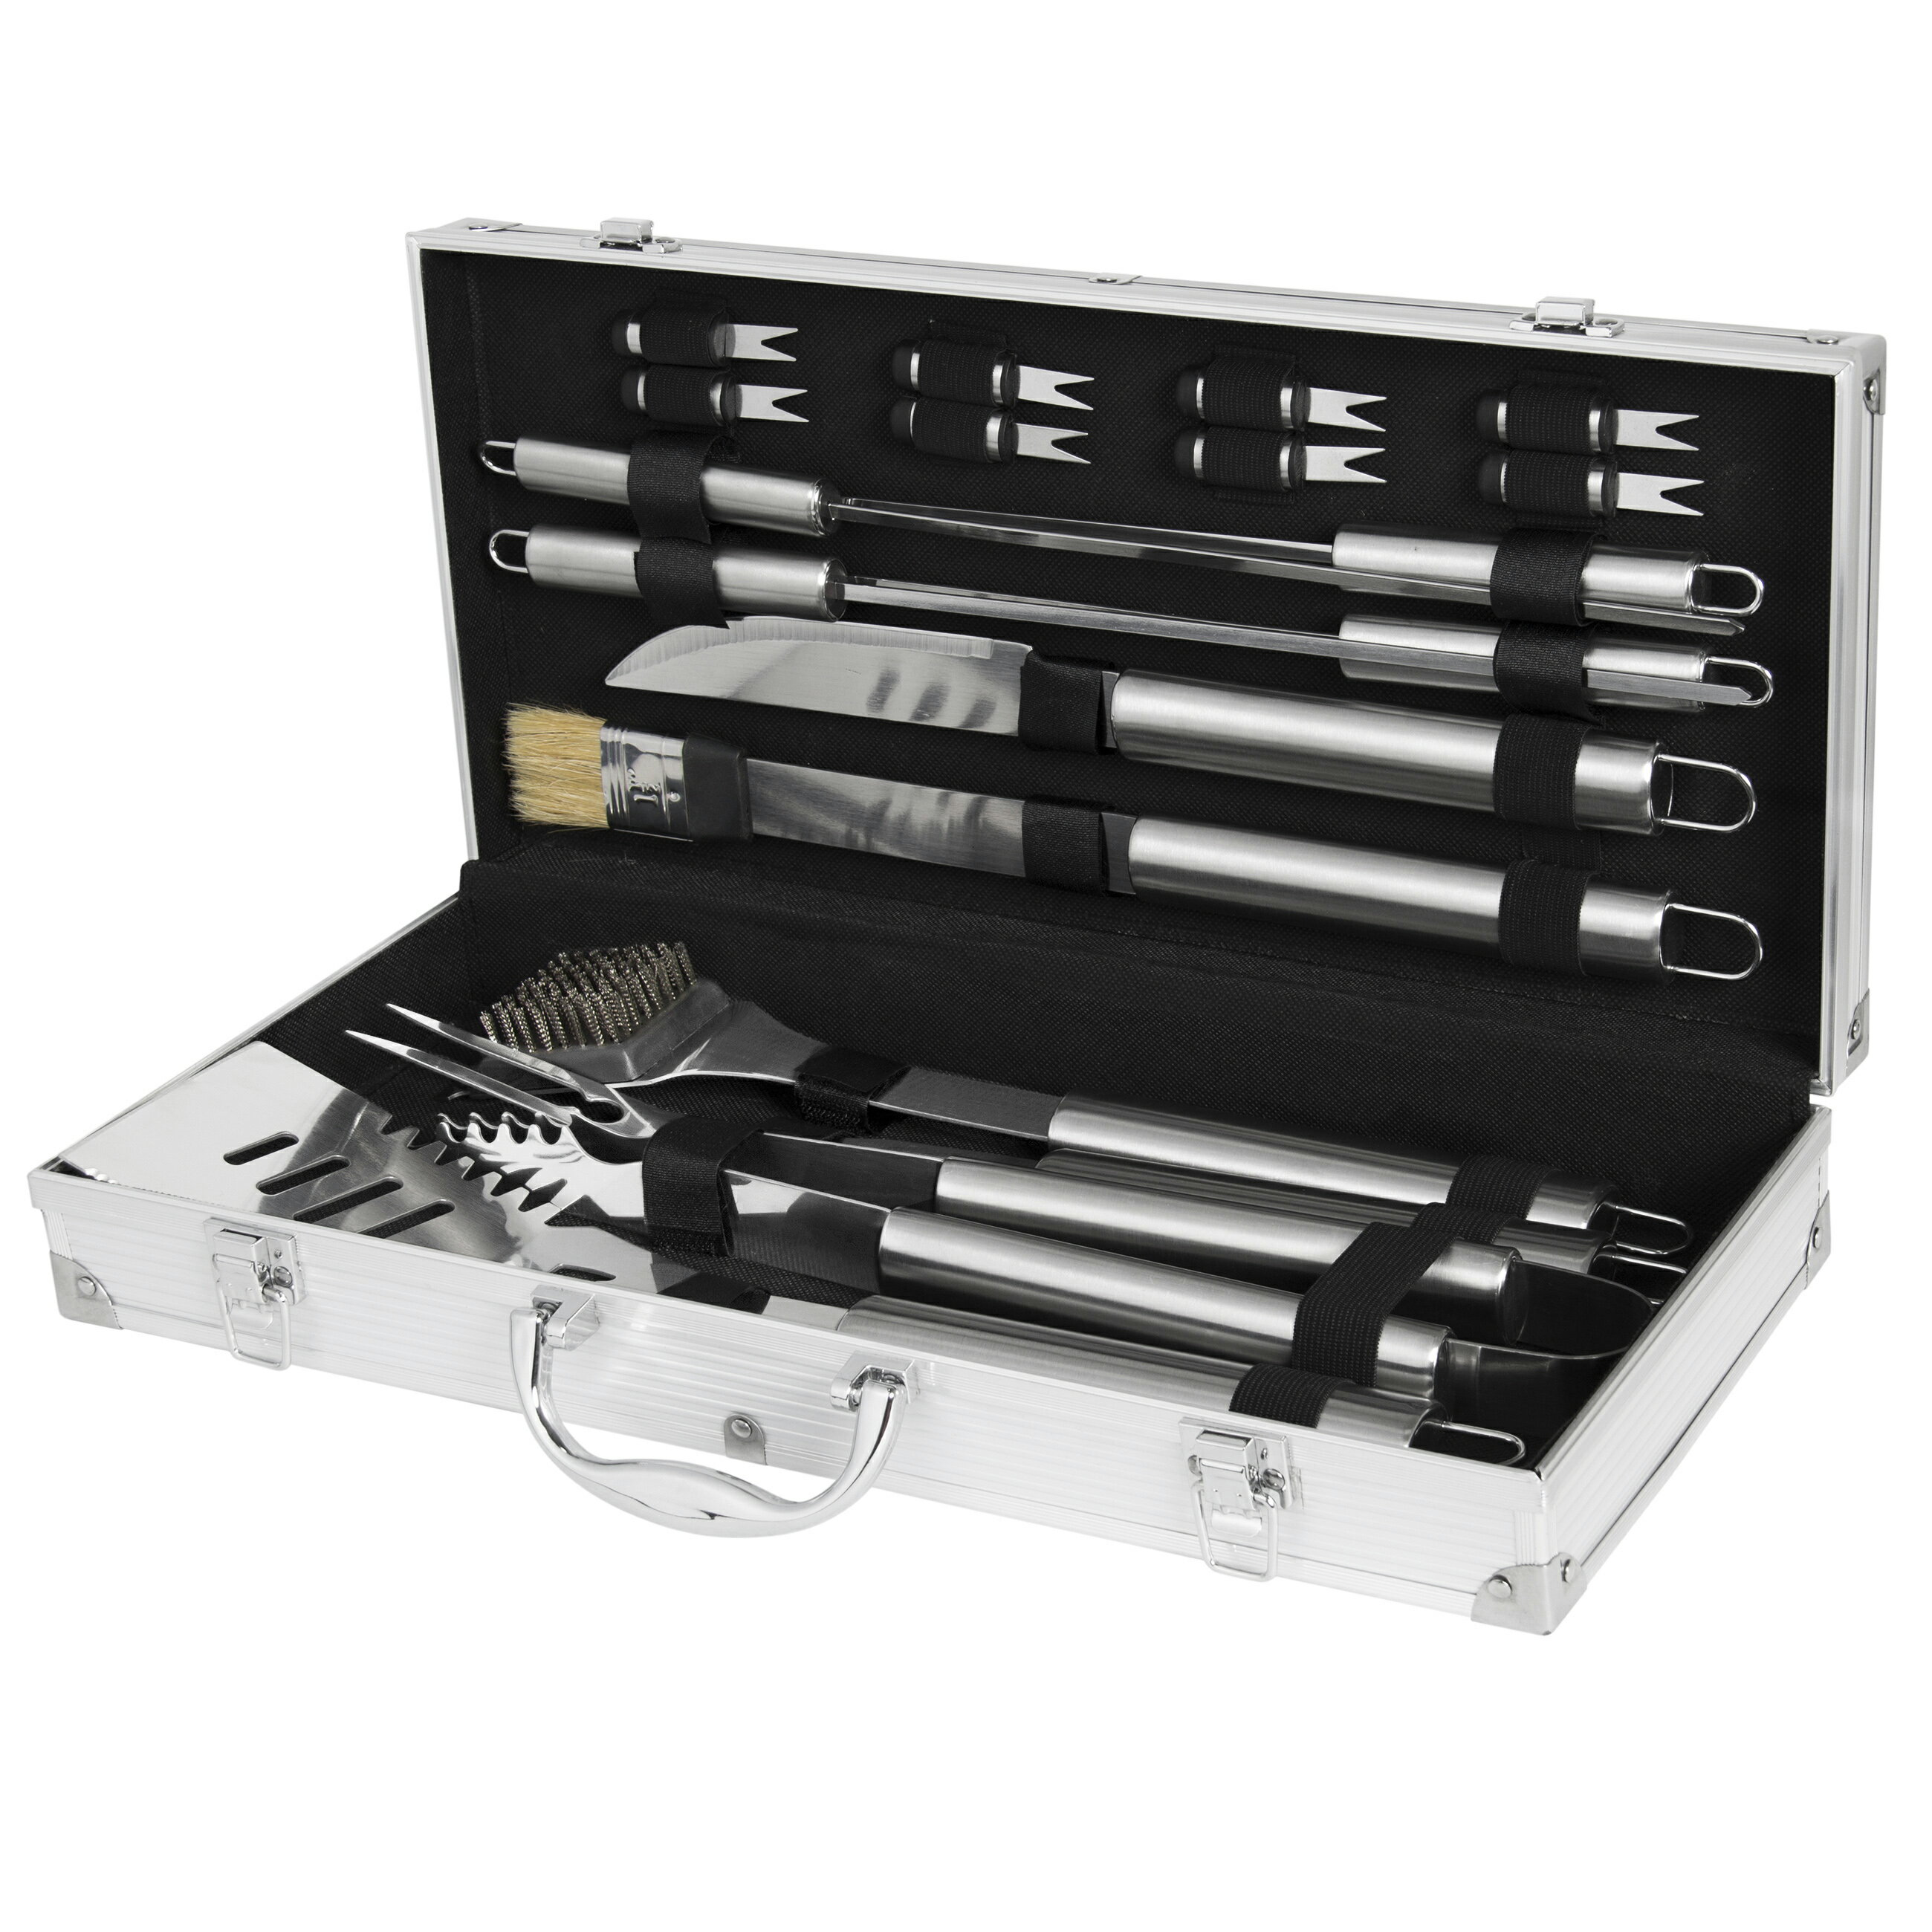 Best Choice Products Bcp 19pc Stainless Steel Bbq Grill Tool Set With Aluminum Storage Case 1